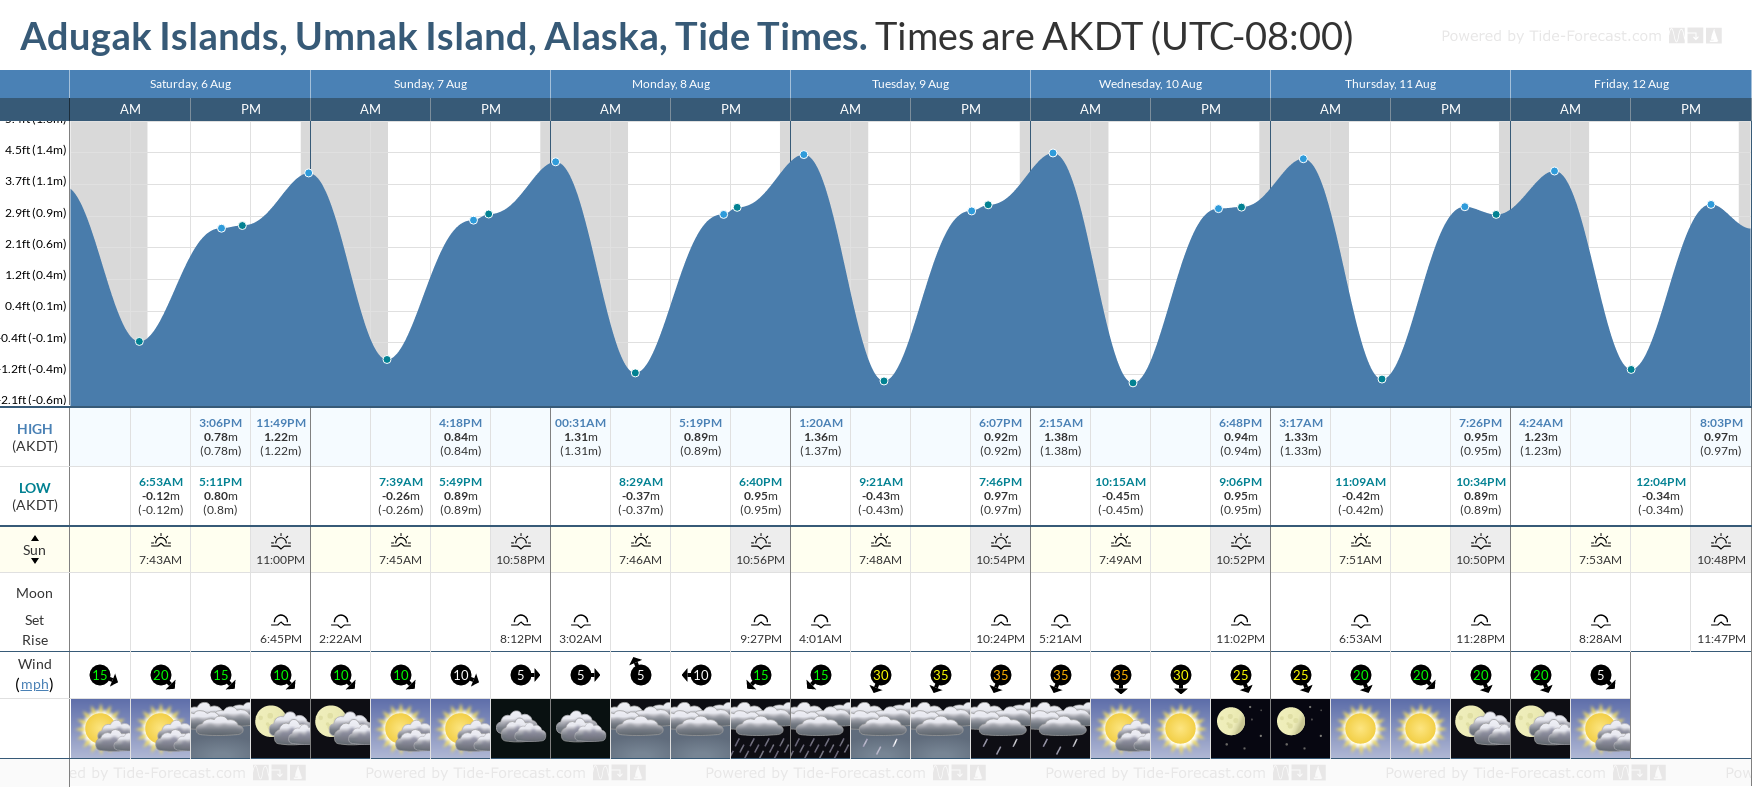 Adugak Islands, Umnak Island, Alaska Tide Chart including high and low tide tide times for the next 7 days